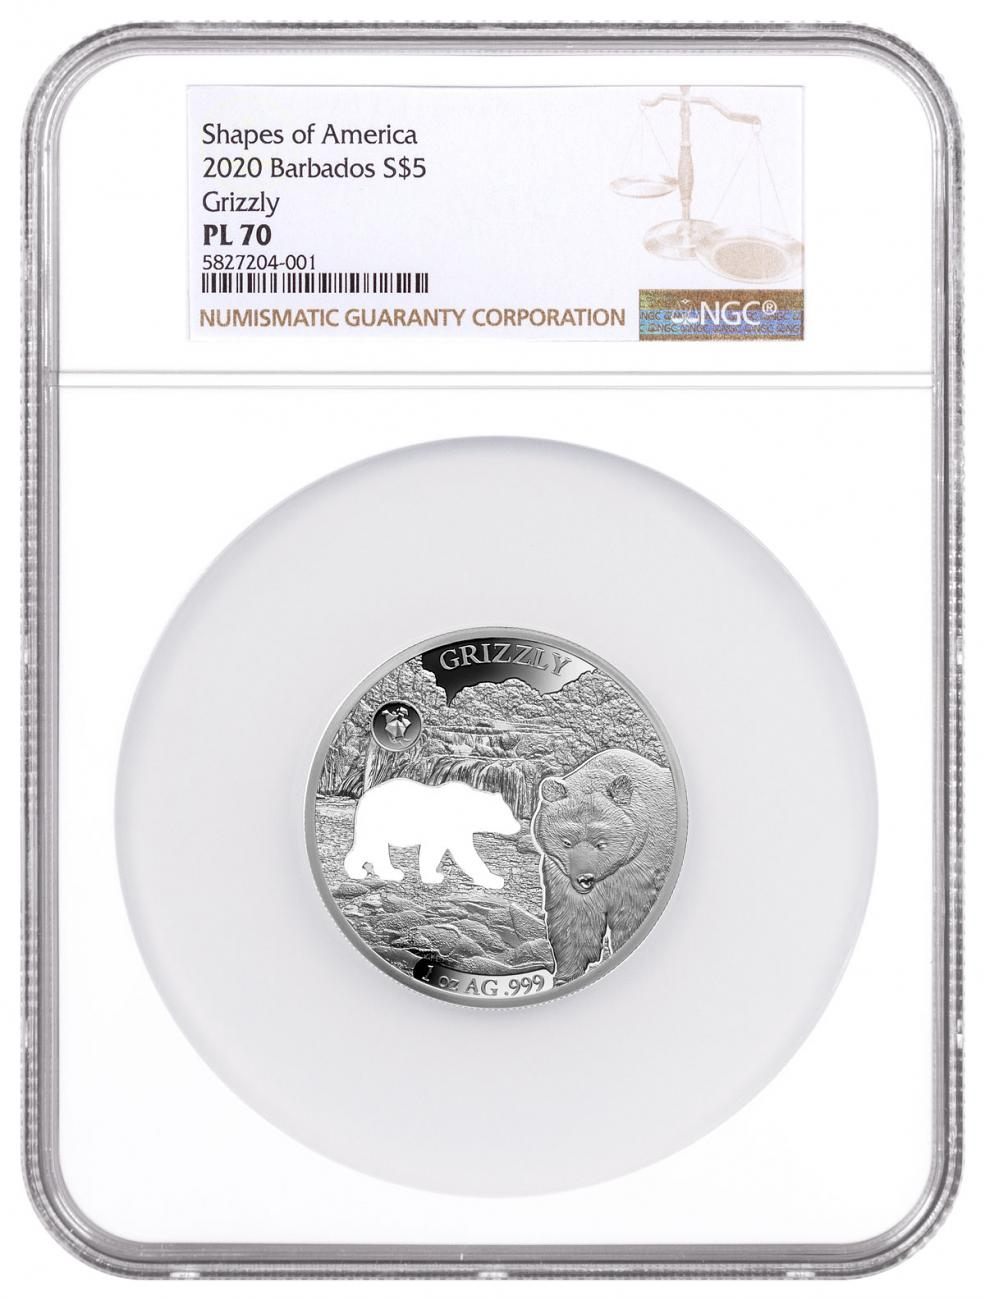 2020 Barbados Shapes of America - Cut-Out High Relief 1 oz Proof-Like Silver $5 Coin Grizzly NGC PL70